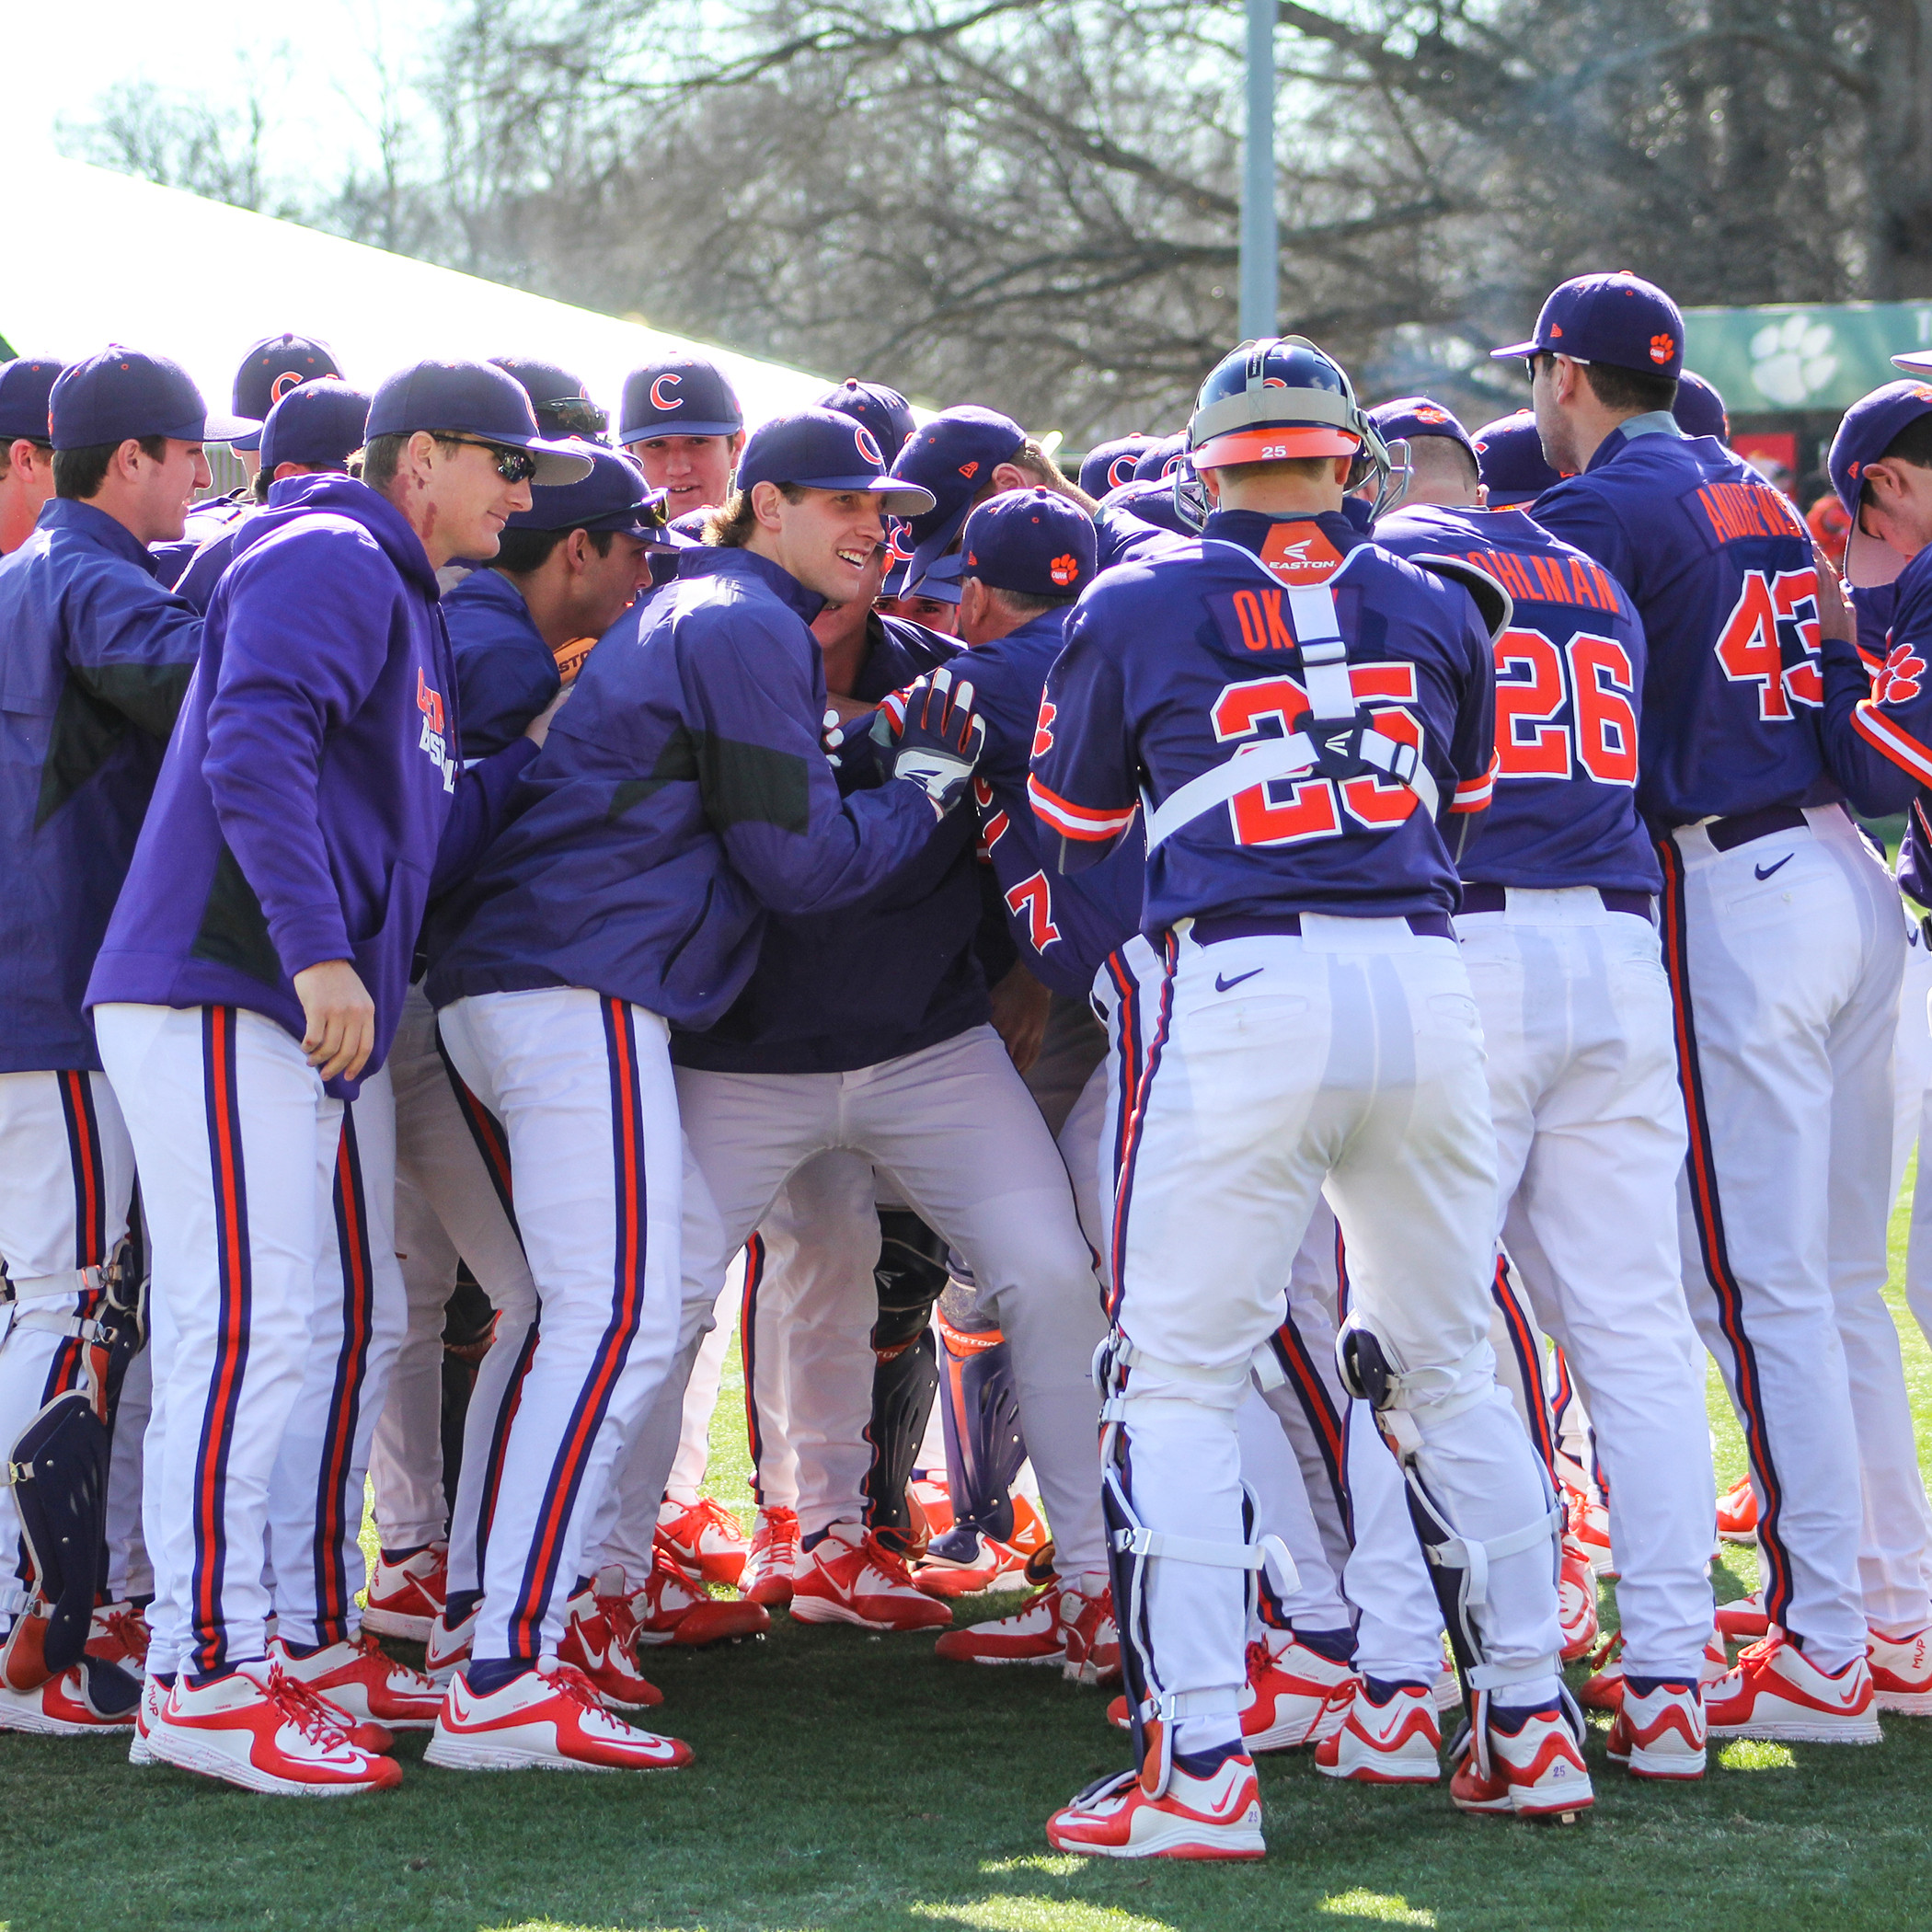 Clemson vs. Maine Series Changes